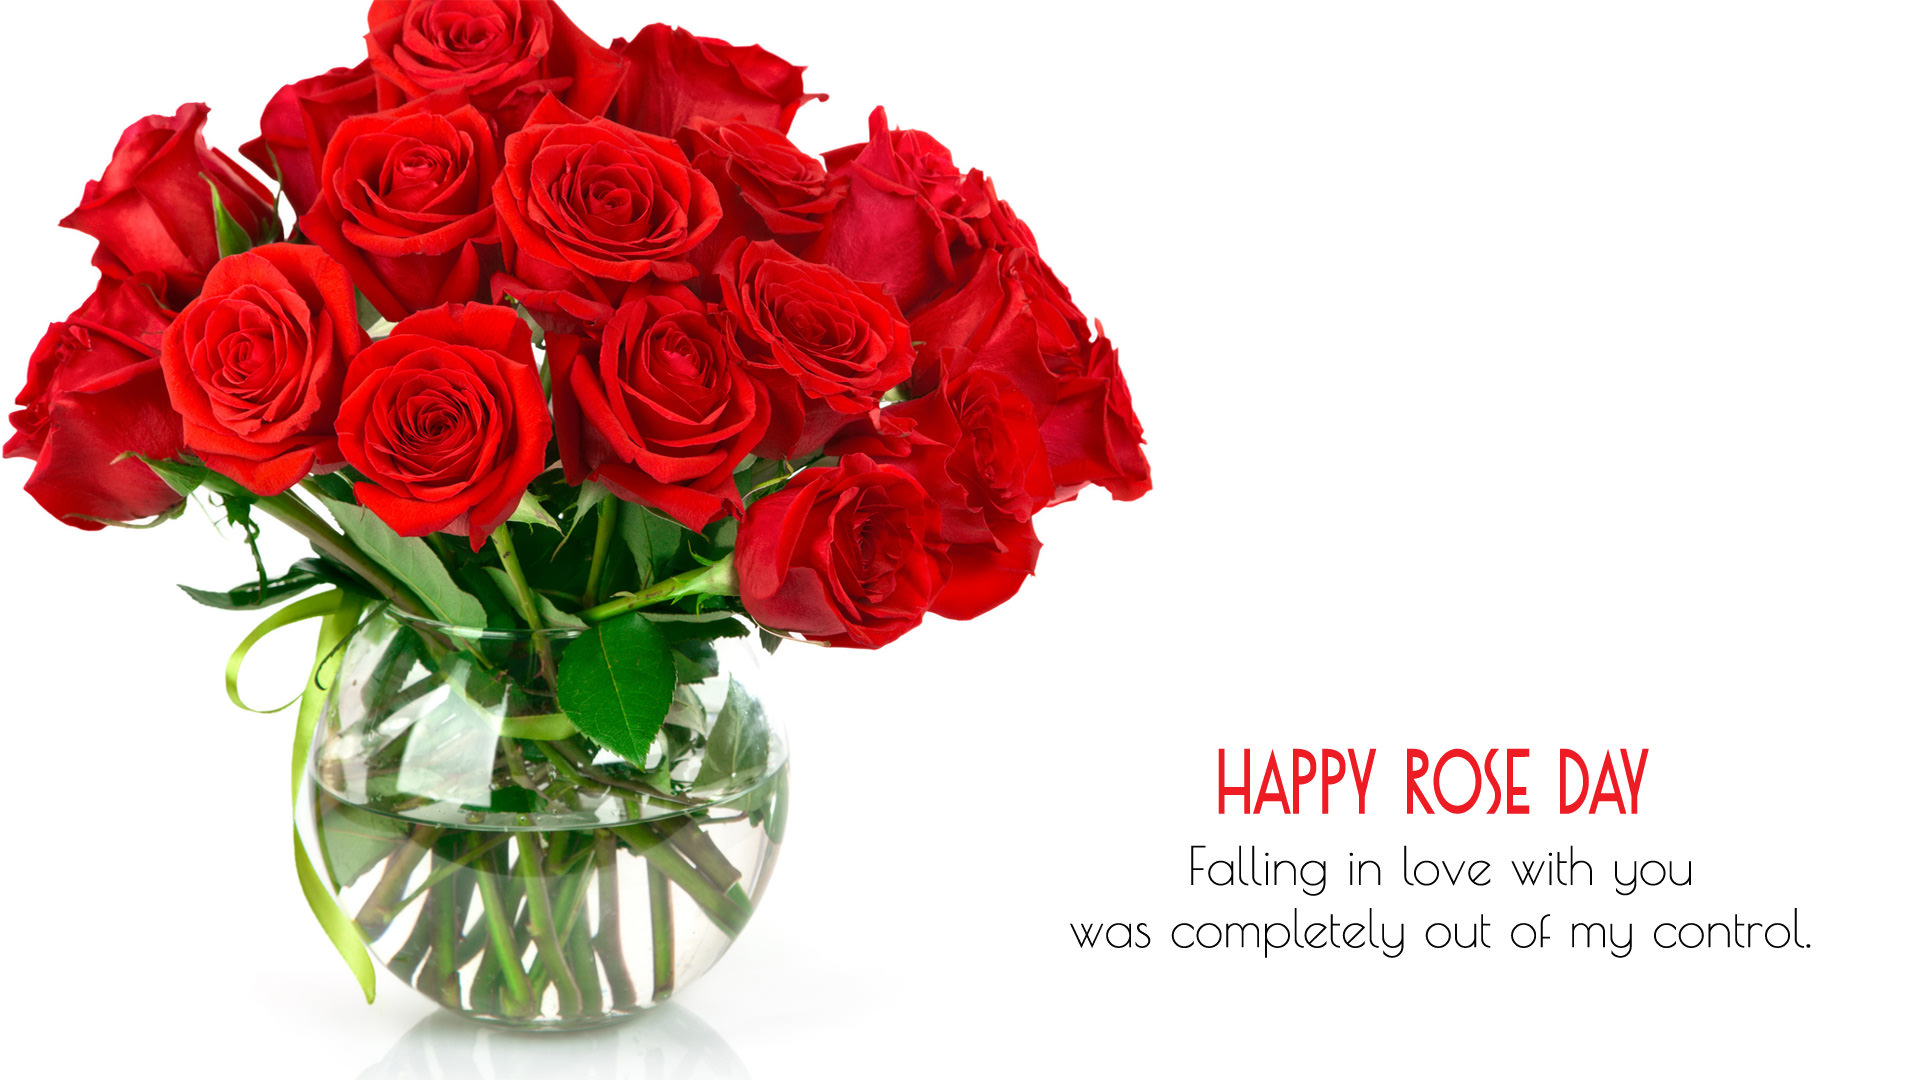 HD Rose Day Wallpapers